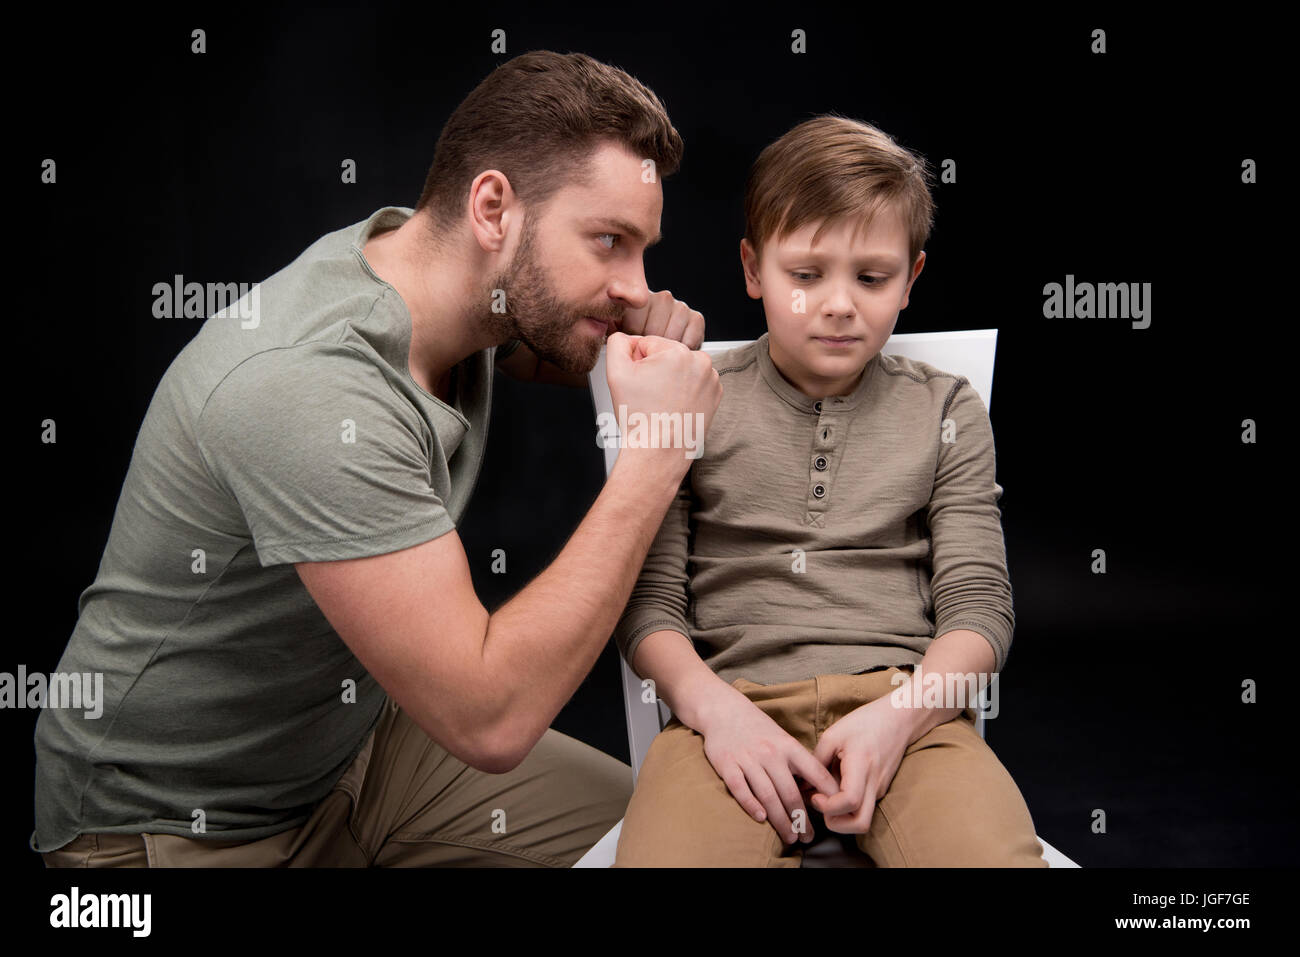 Angry father threatening and gesturing to scared little son sitting on chair, family problems concept - Stock Image